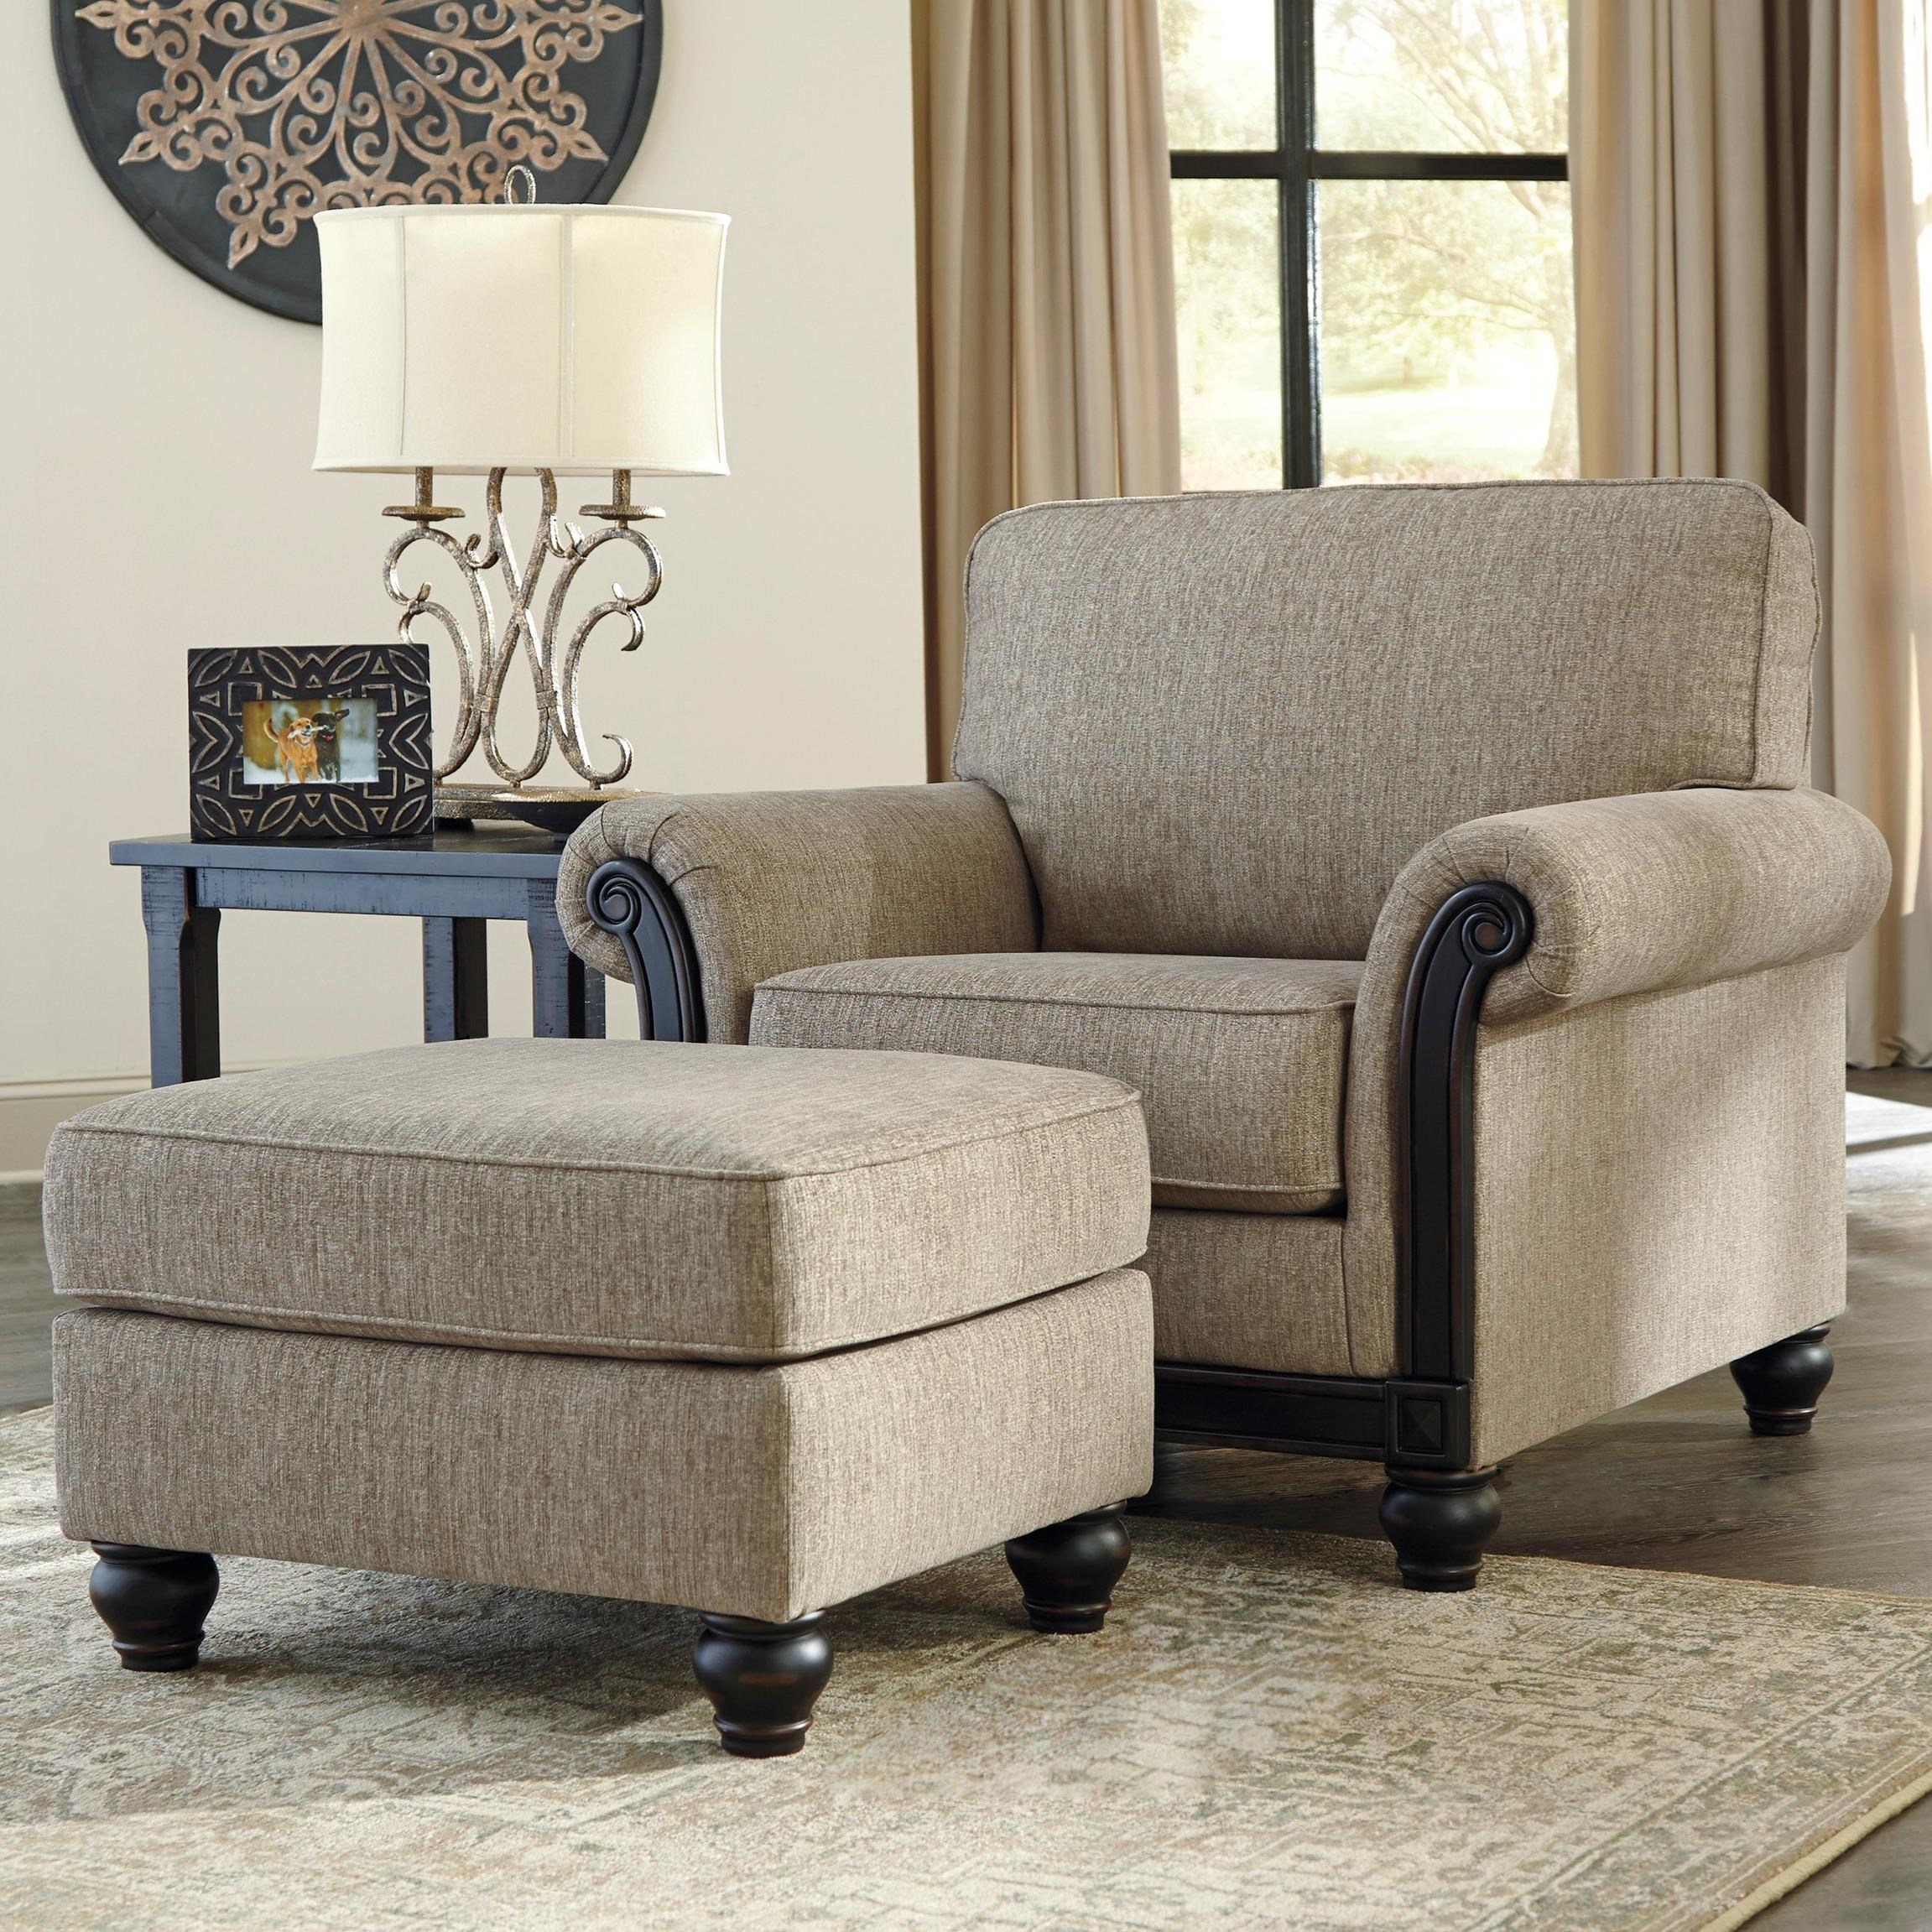 Ashleys Furiture: Ashley Signature Design Blackwood Transitional Chair